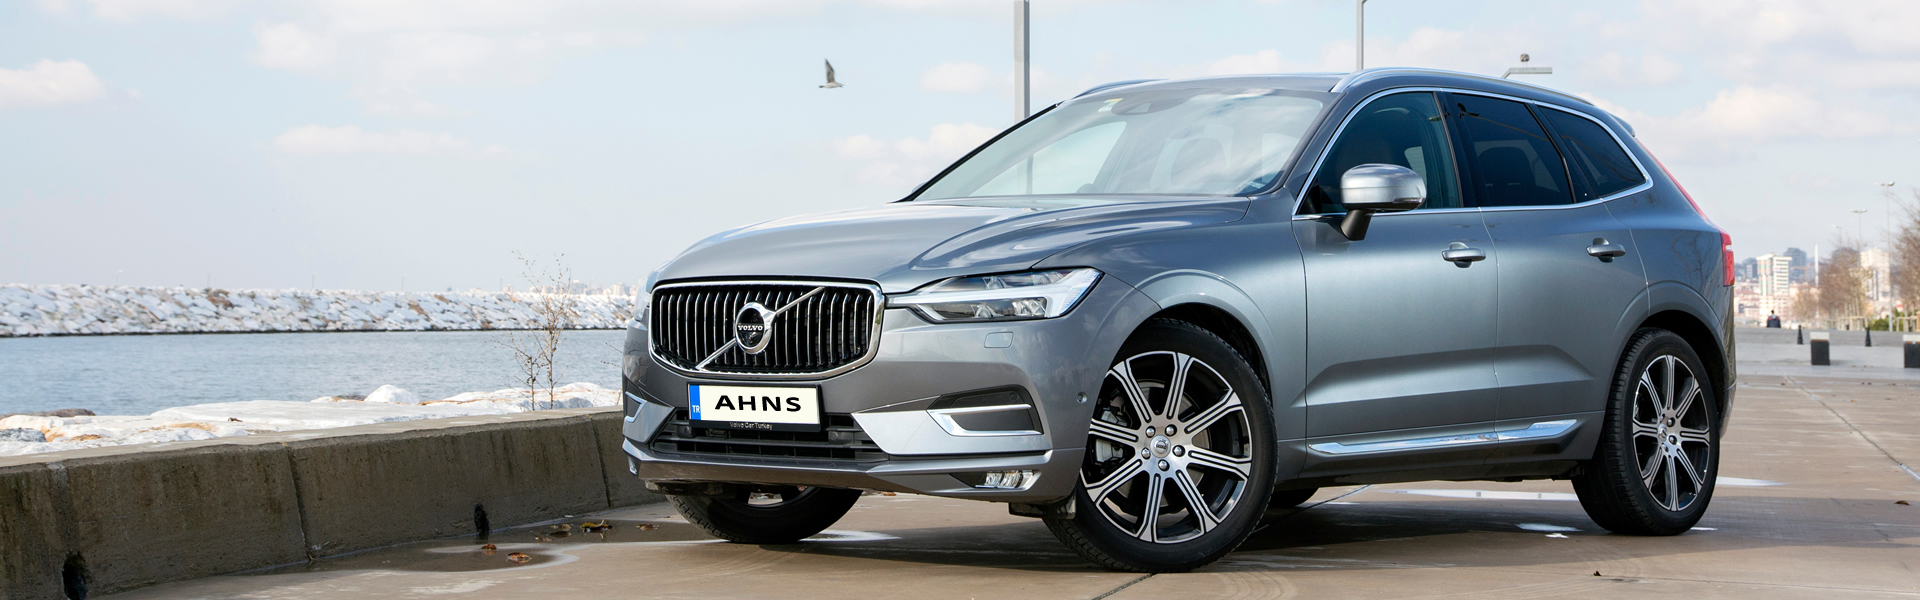 Volvo Specialised Car Services